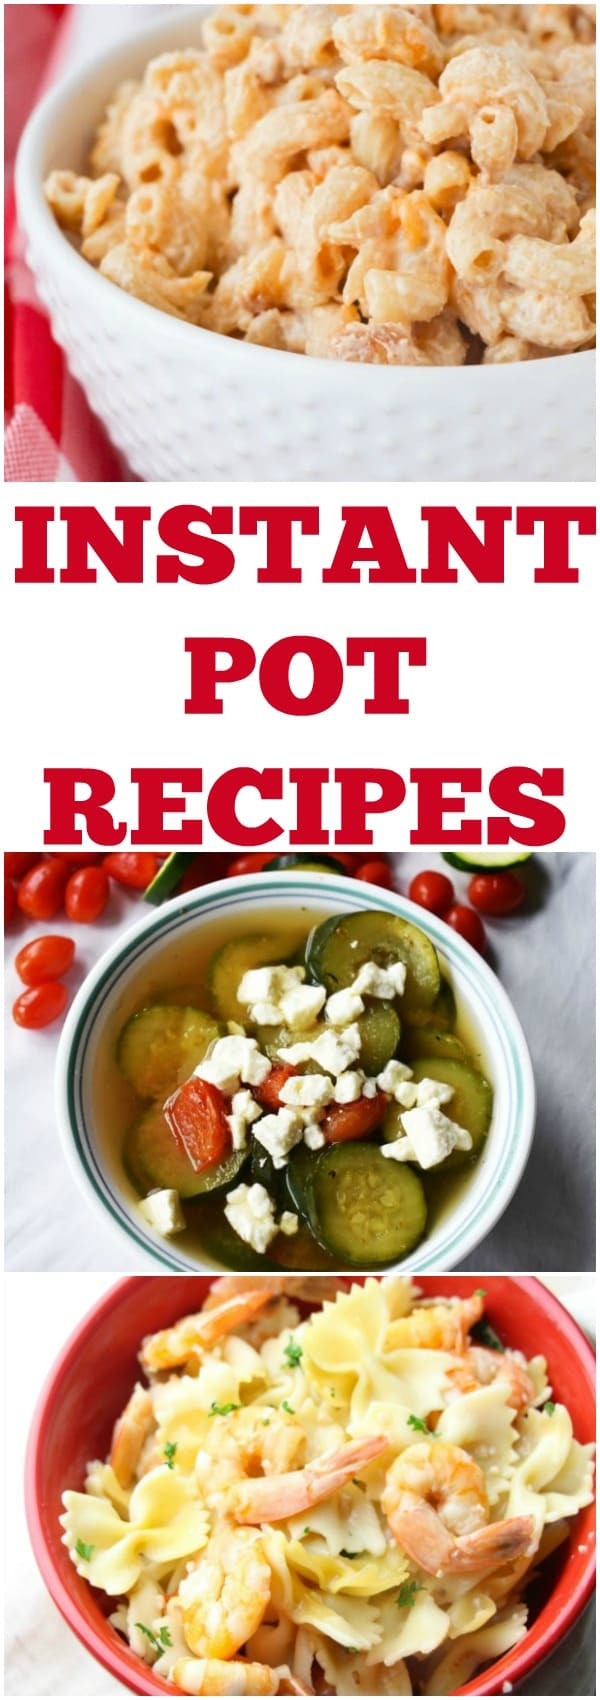 Quick Instant Pot Recipes  Instant Pot Recipes